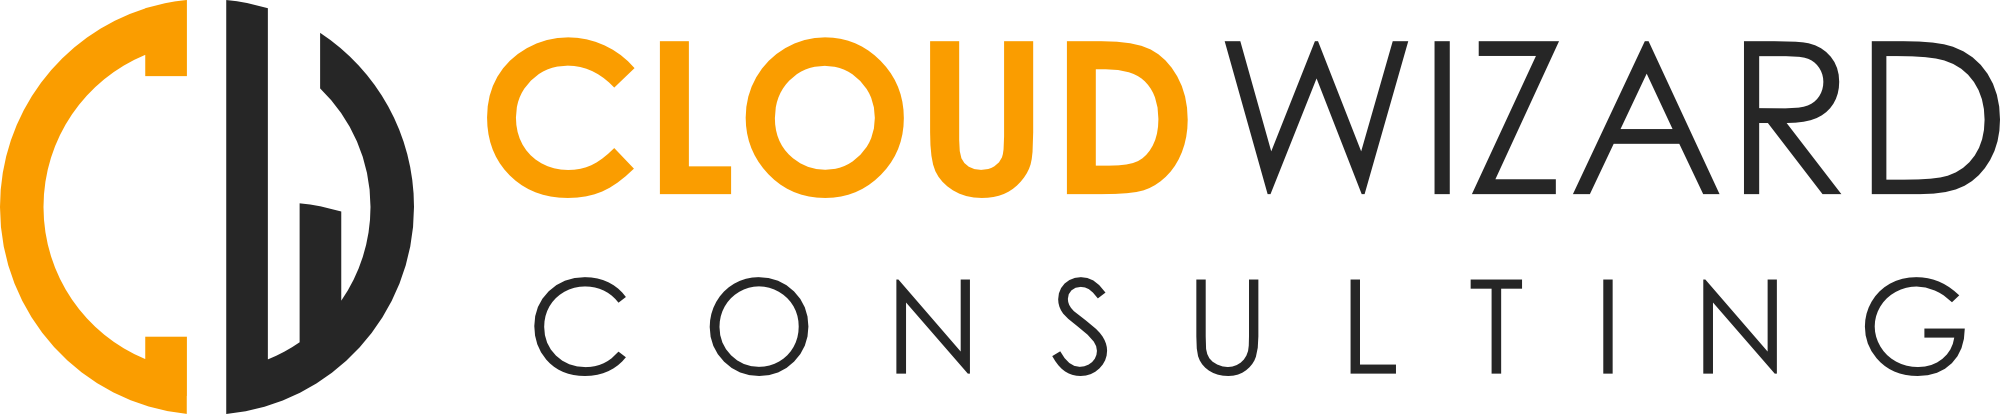 Cloud Wizard Consulting - Authorised AWS Training Partner